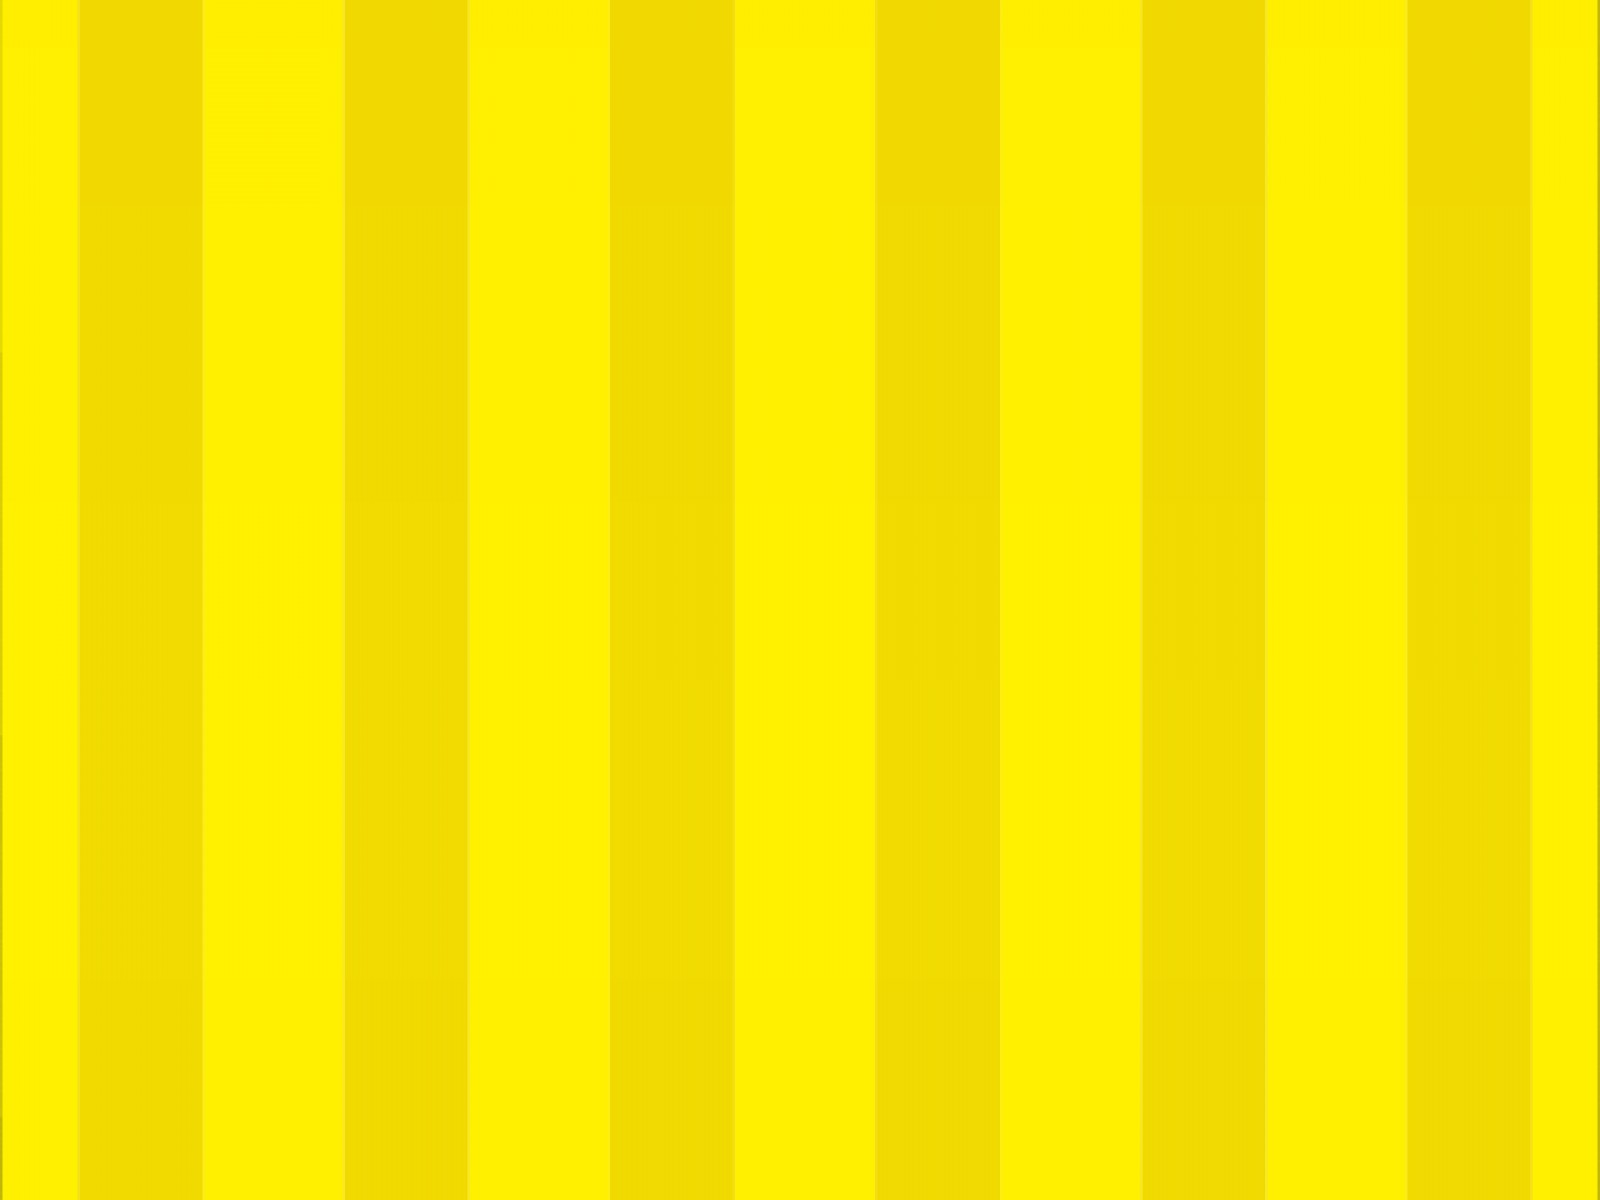 ... yellow wallpaper 7 ...